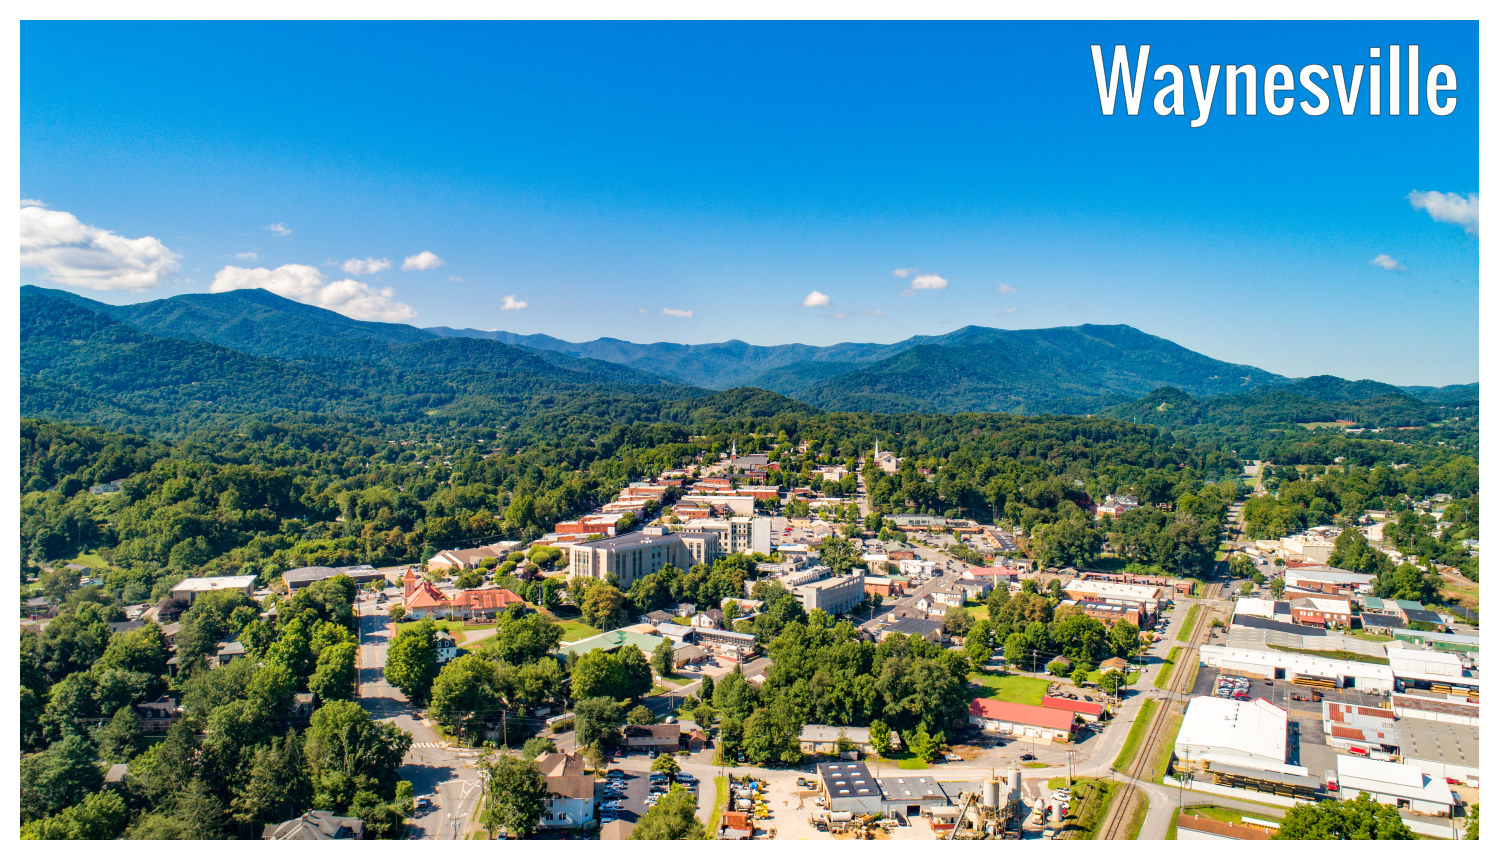 Waynesville Nc Detailed Weather Forecast Long Range Monthly Outlook And Climate Information Weather Atlas The weather data that we use to produce our weather forecast charts come from the most trusted and reliable sources available. detailed weather forecast long range